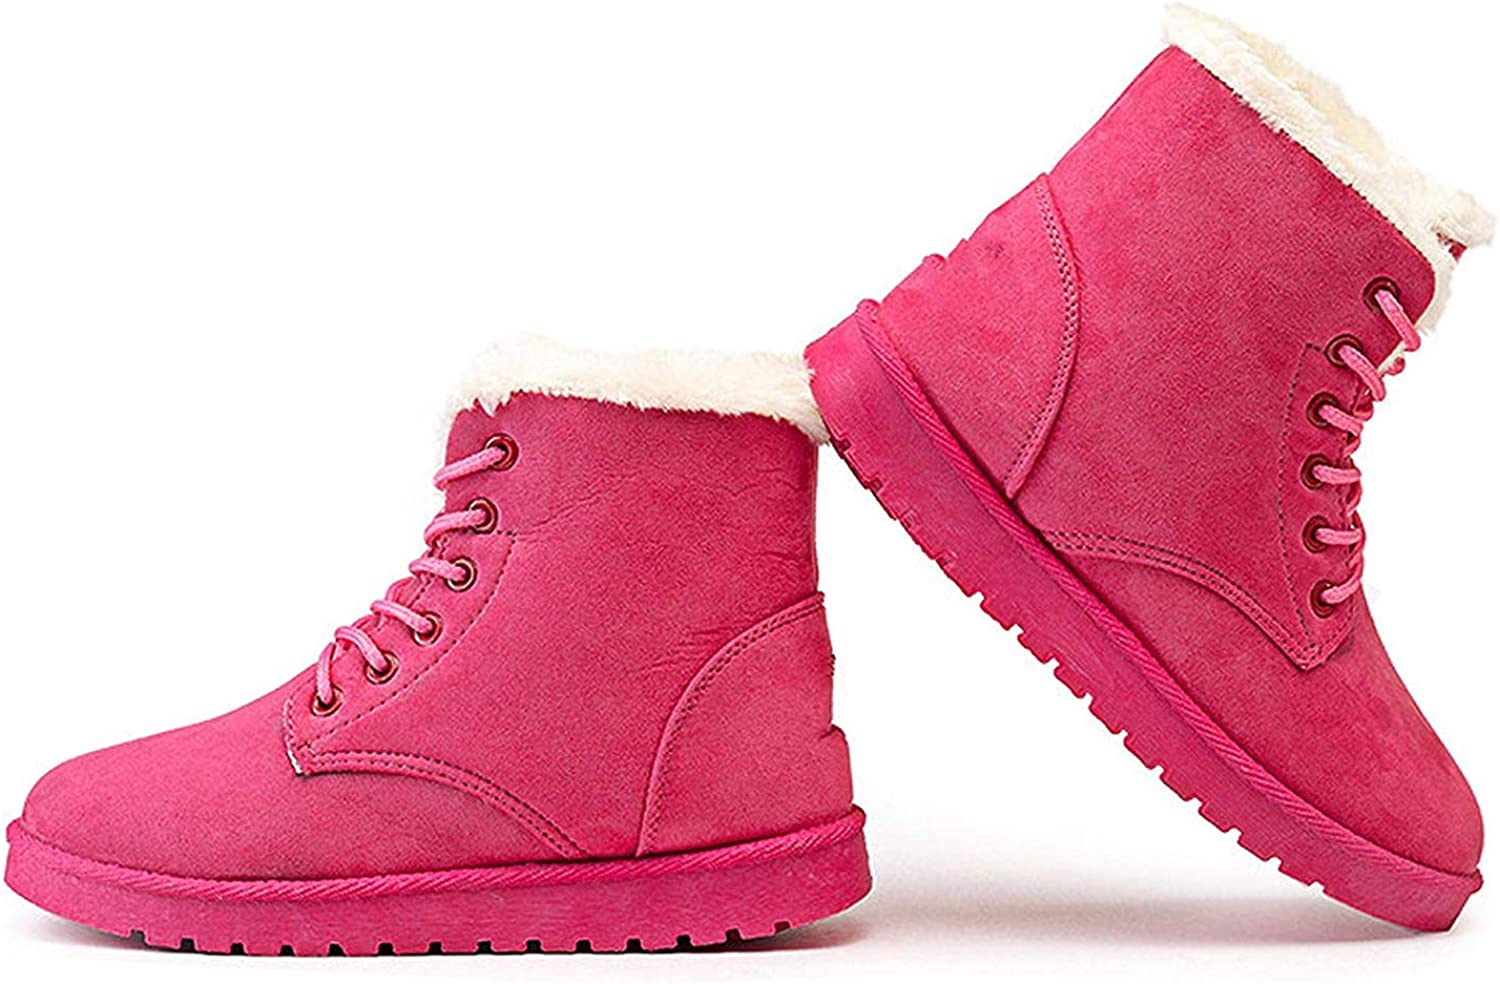 SmarketL Classic Women Winter Boots Suede Ankle Snow Female Warm Fur Plush Insole Boots,Make,Pink,